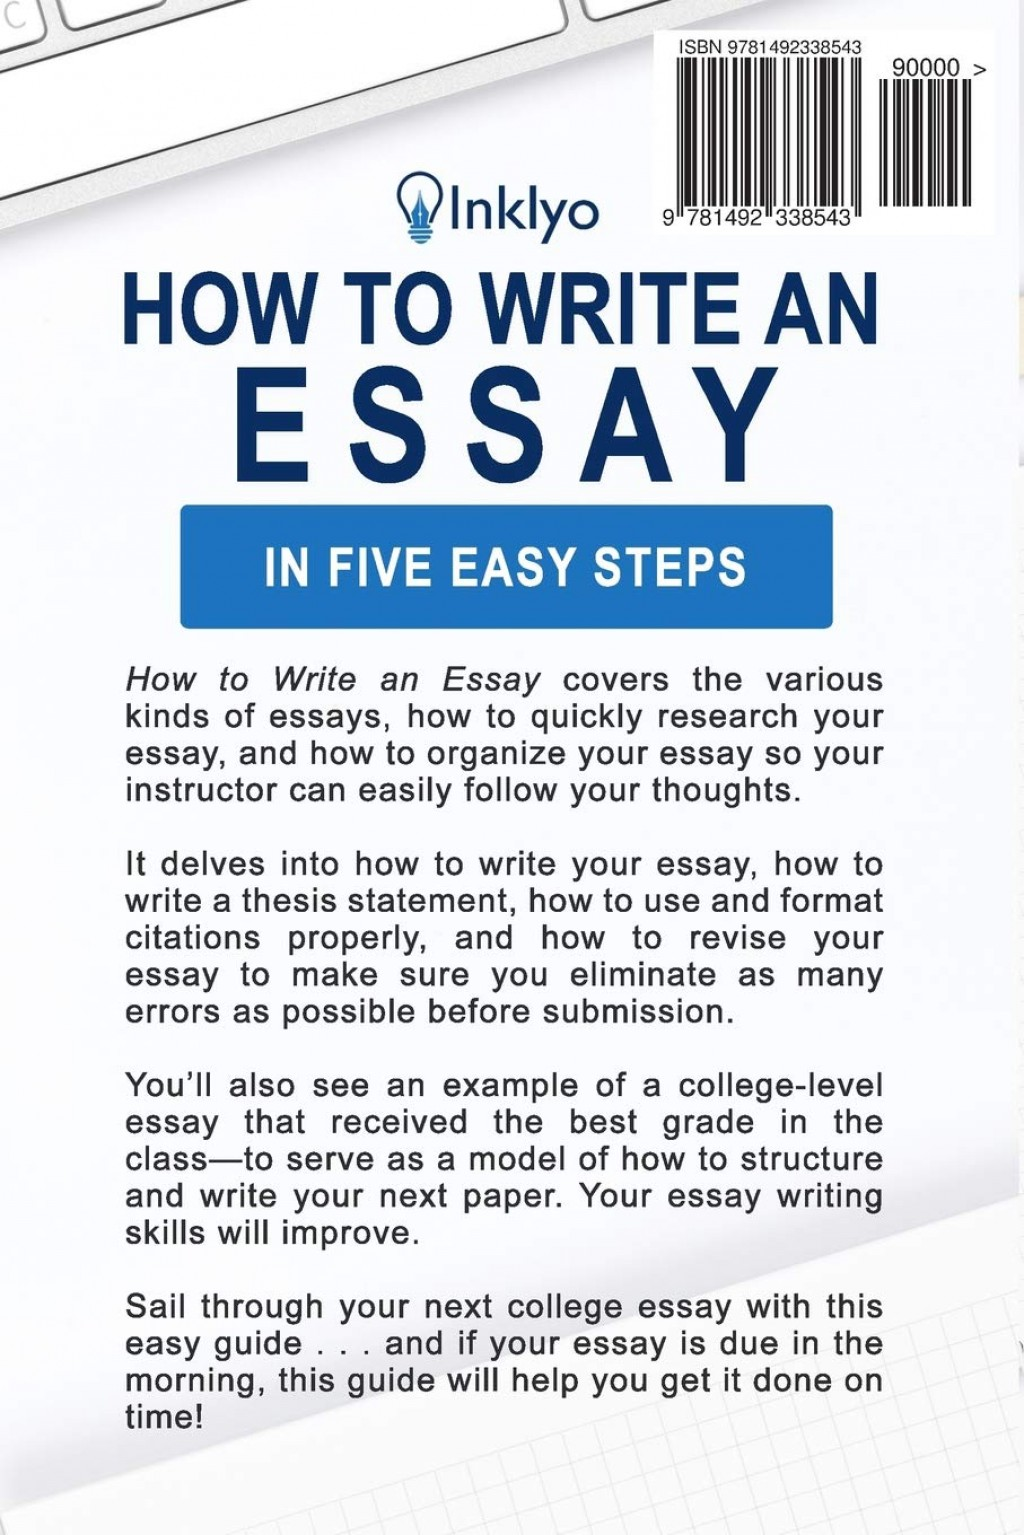 002 How To Write An Essay Example Shocking About Myself For A Scholarship In Mla Format 2017 Introduction Hook Large